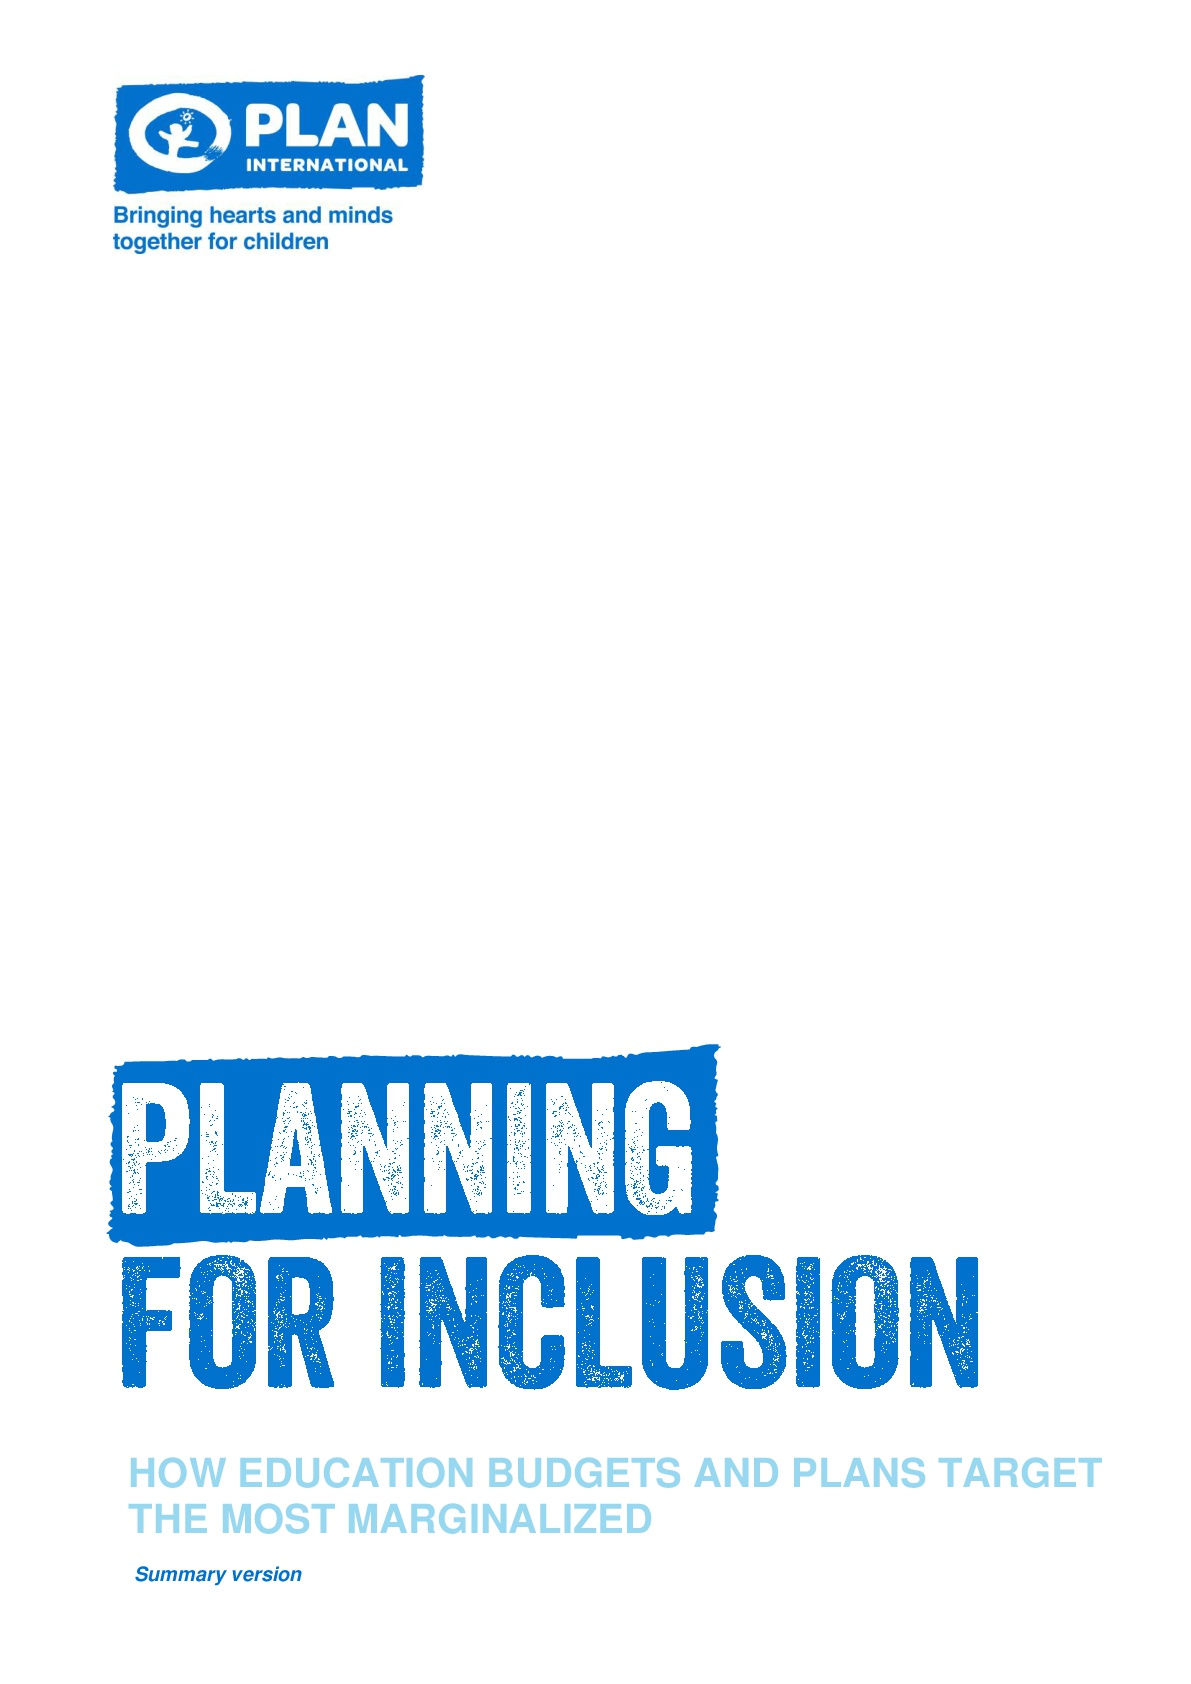 Planning for inclusion: How education budgets and plans target the most marginalized